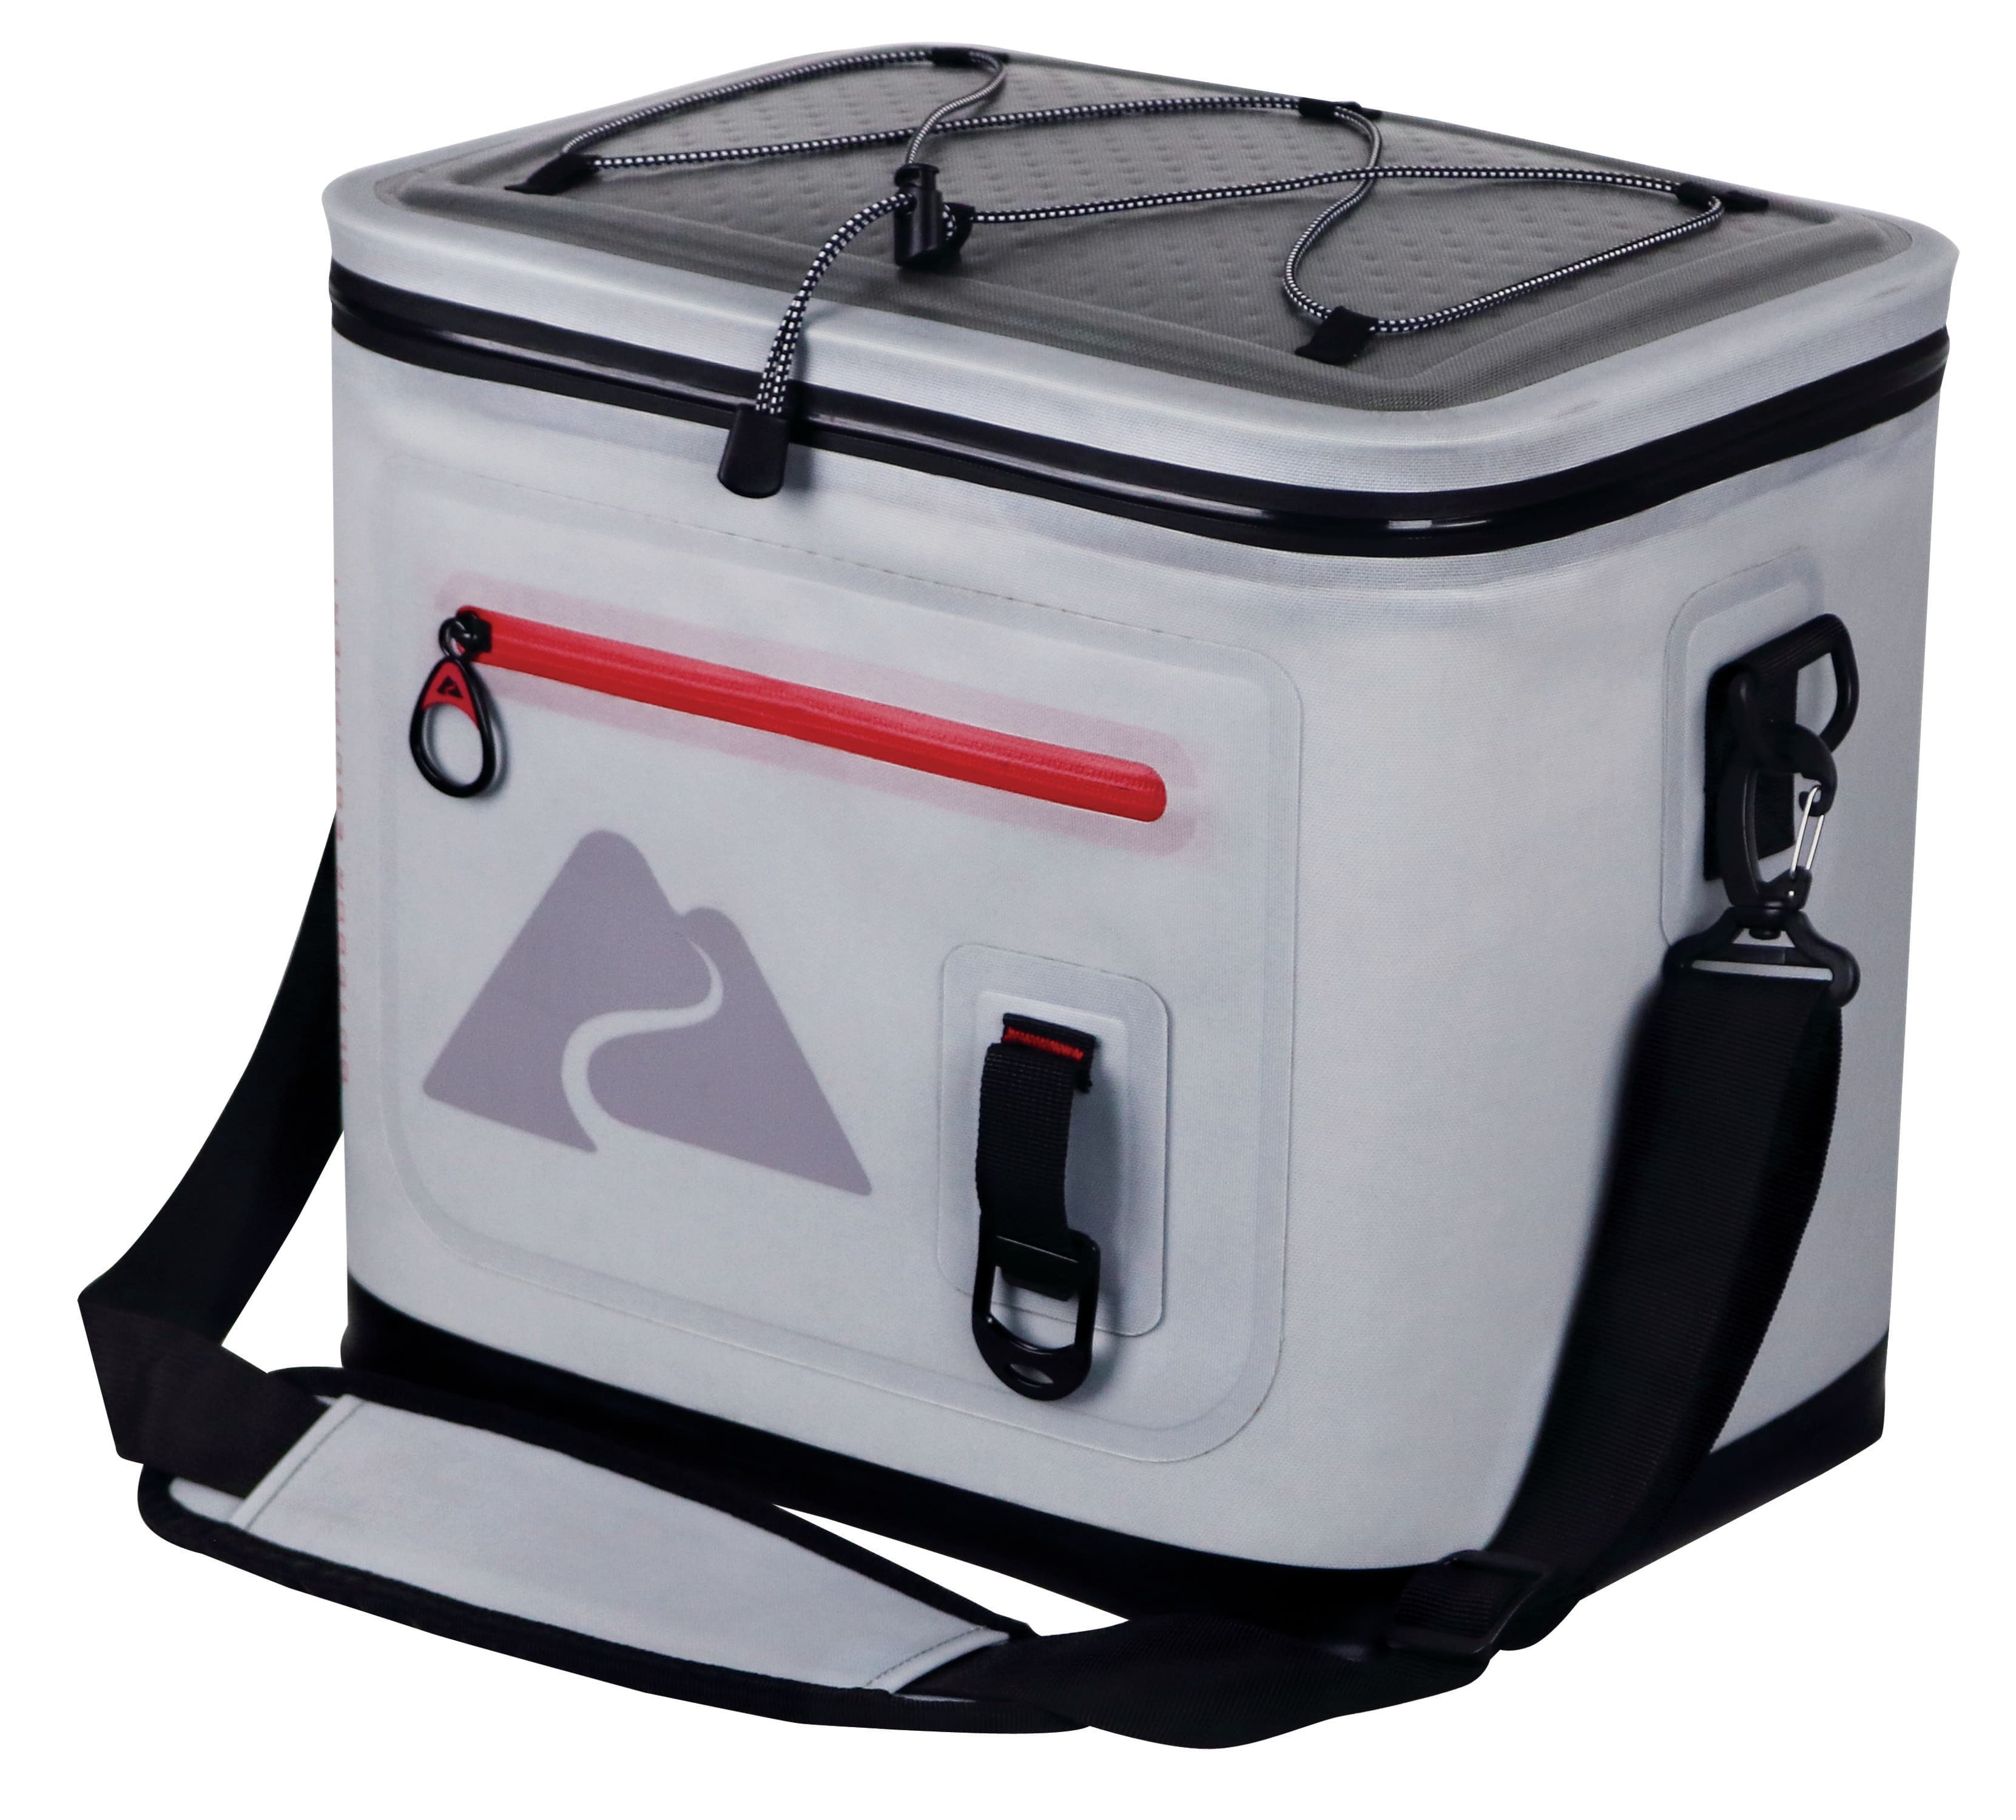 Ozark Trail 20 Can Leaktight Soft Cooler - $34 (Was $68 @ Walmart B&M) YMMV